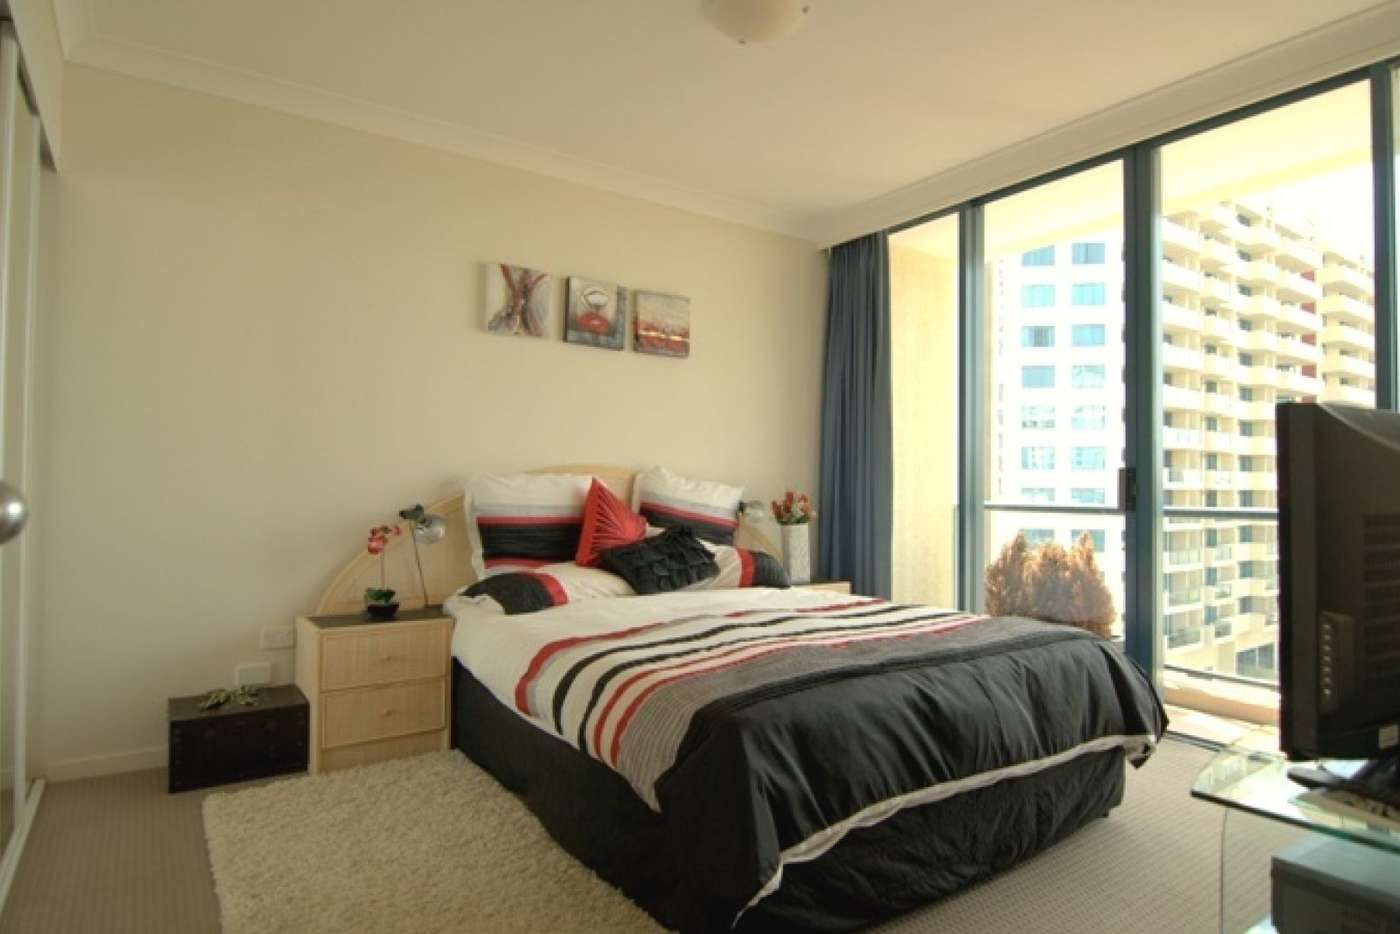 Sixth view of Homely apartment listing, ID:3820792/35 Ferry Street, Kangaroo Point QLD 4169